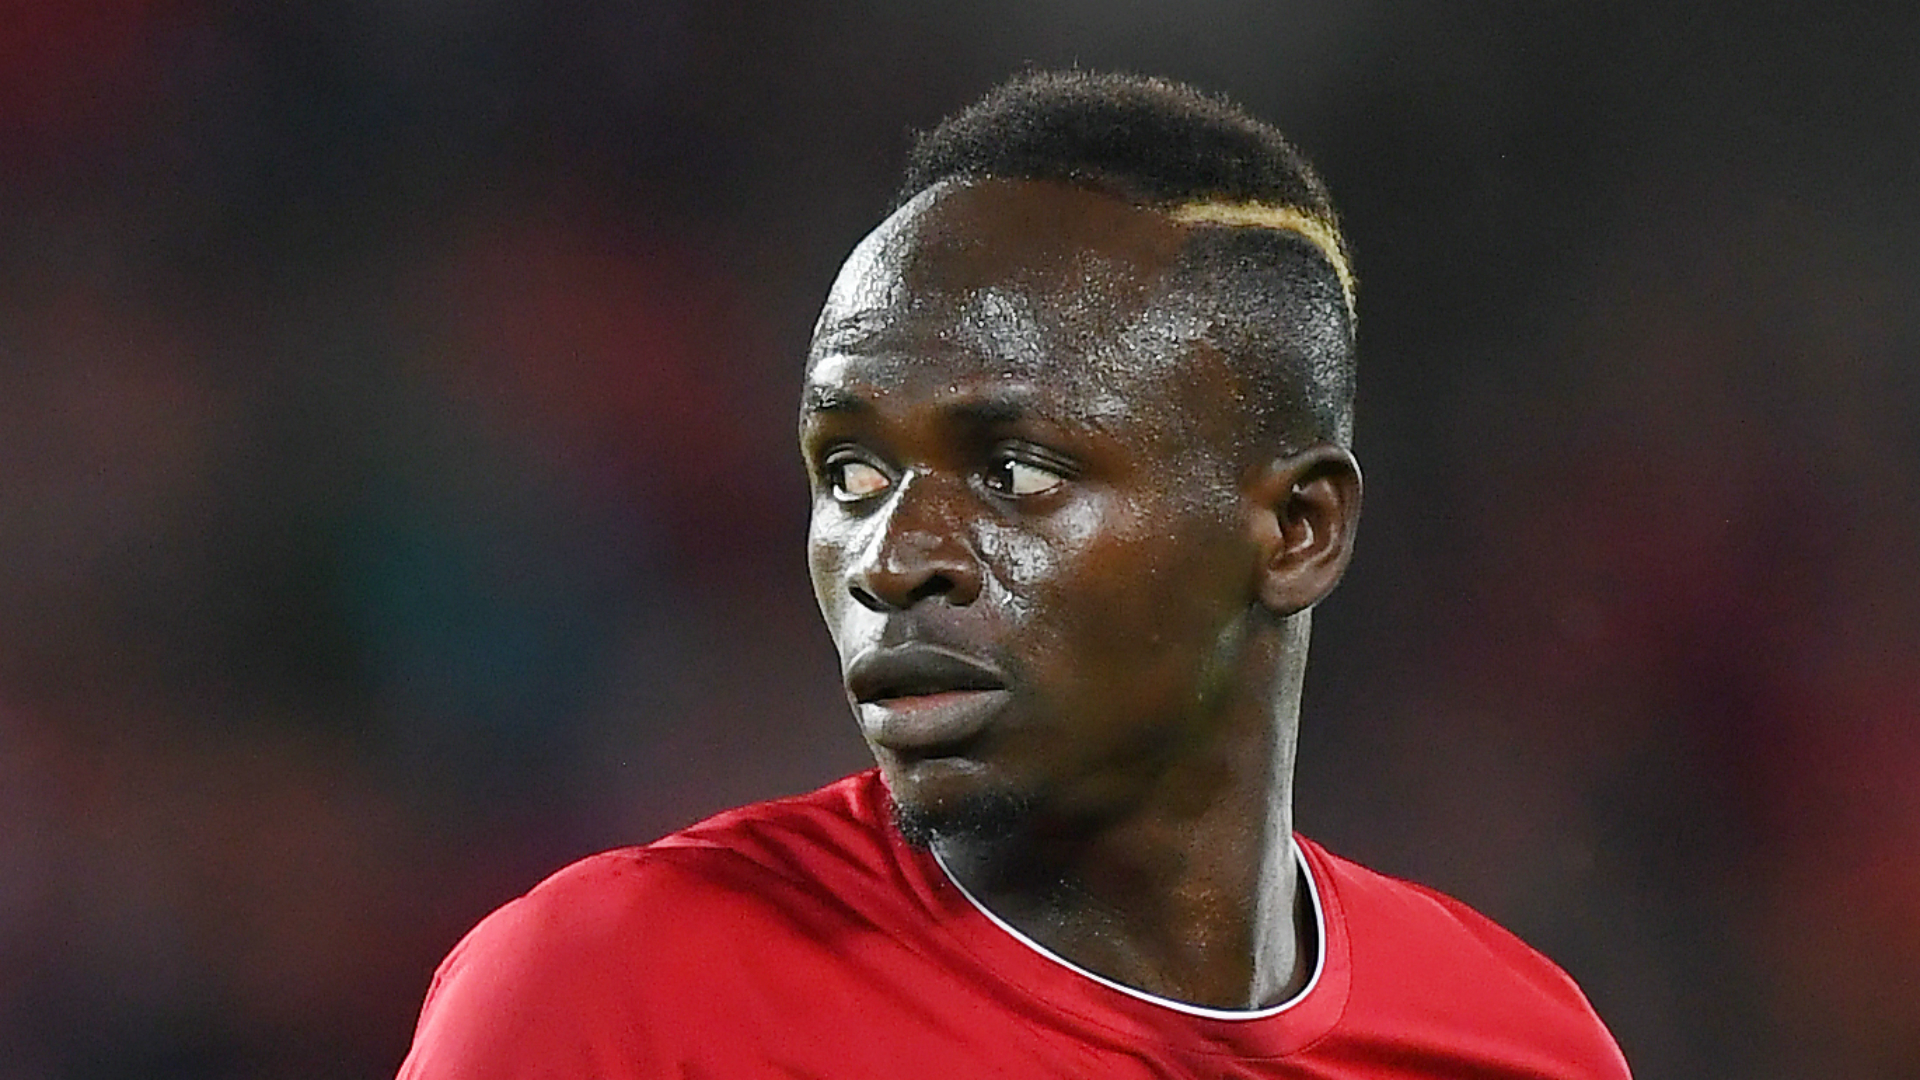 Adrian makes his Liverpool debut with Sadio Mane also included in their side, while N'Golo Kante is fit to start for Chelsea.